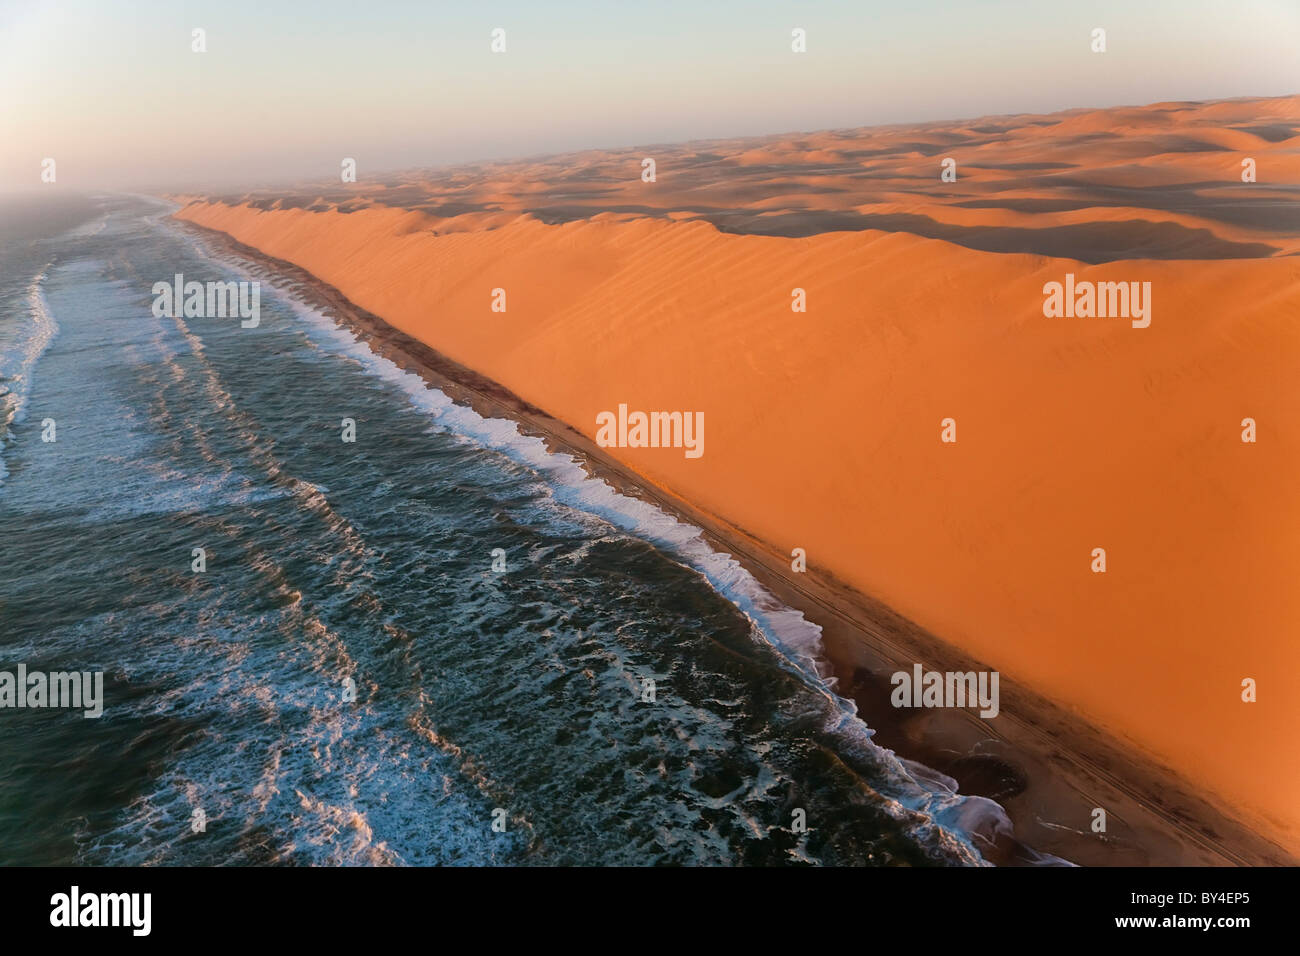 Aerial view over sand dunes & sea, Namib Desert, Namibia - Stock Image